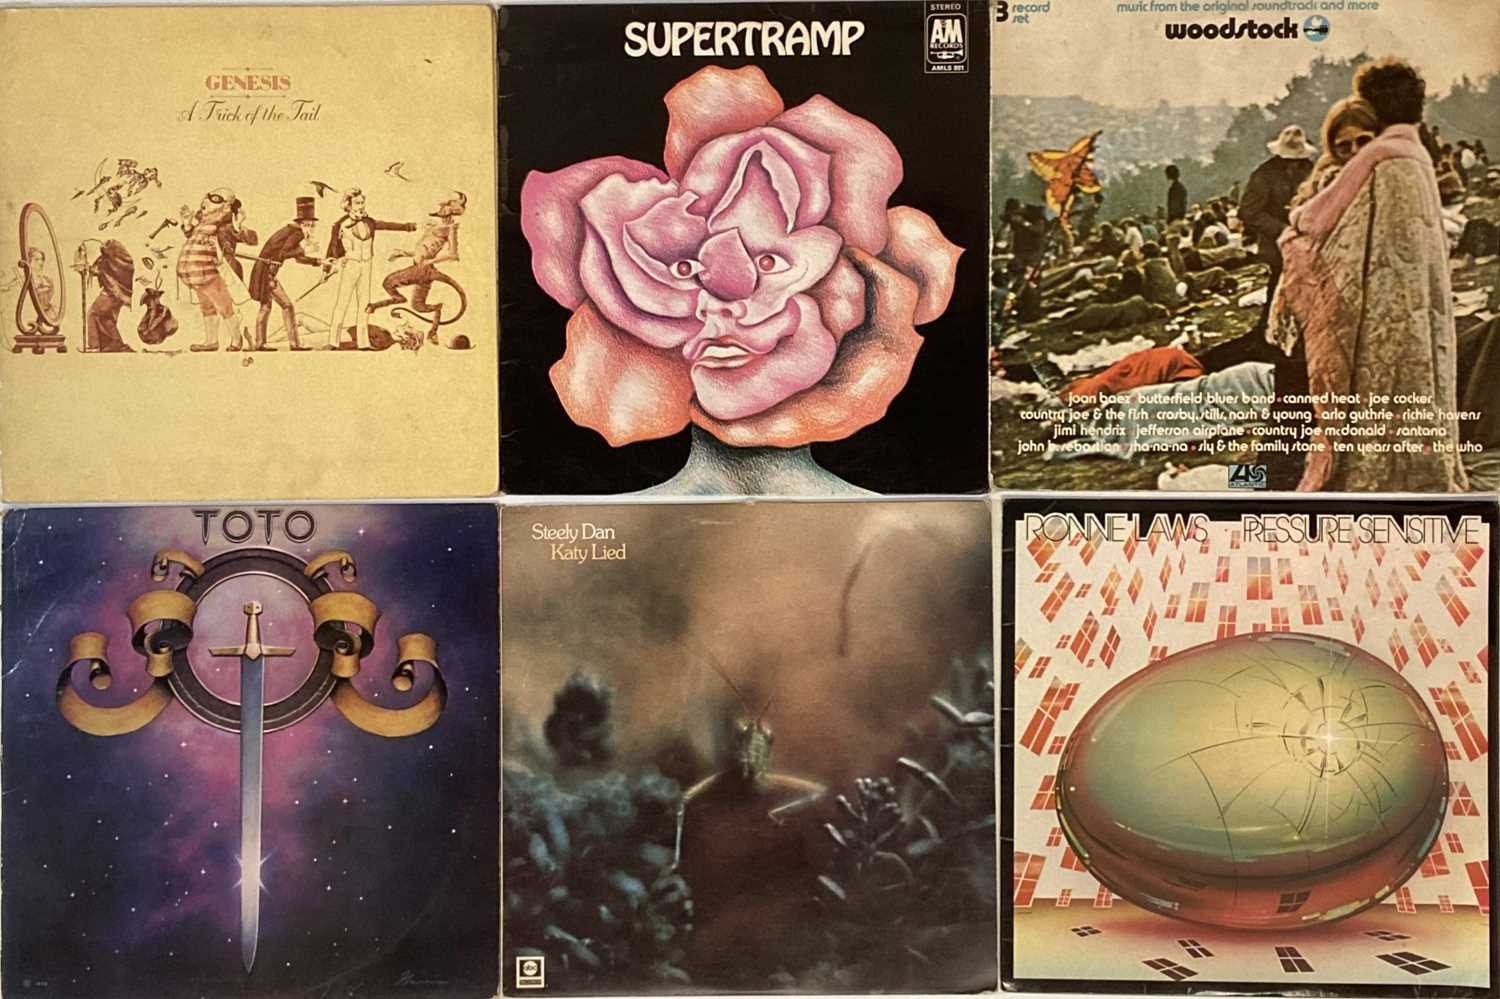 CLASSIC/ FOLK/ SOUTHERN ROCK - LPs - Image 2 of 6